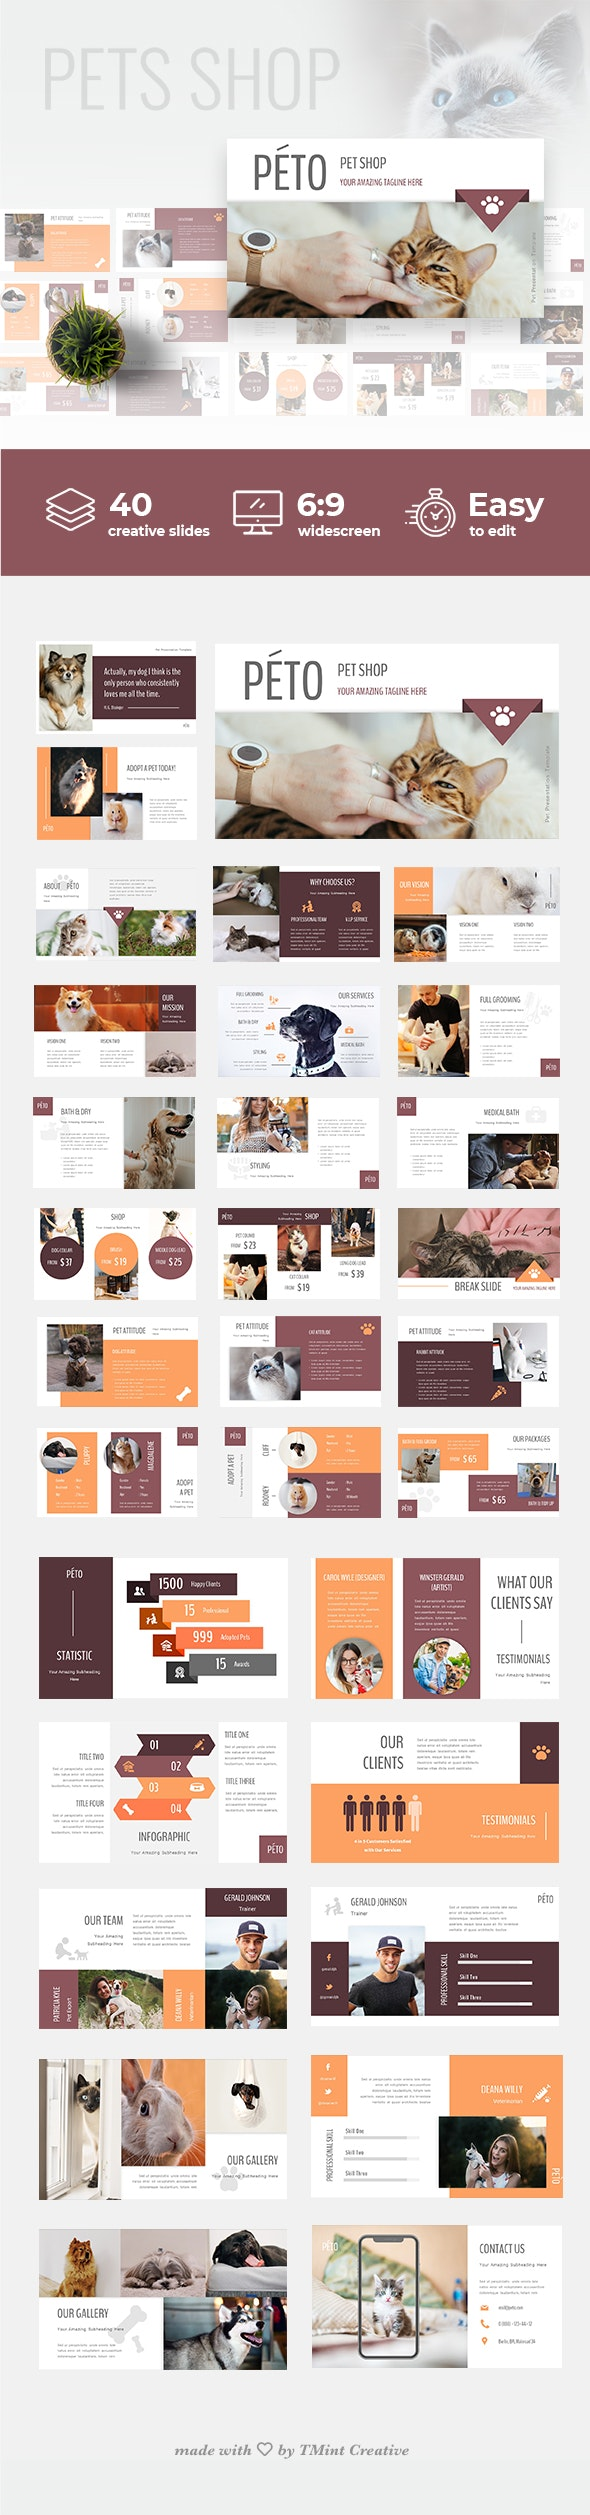 Peto - Powerpoint Presentation Template - Business PowerPoint Templates